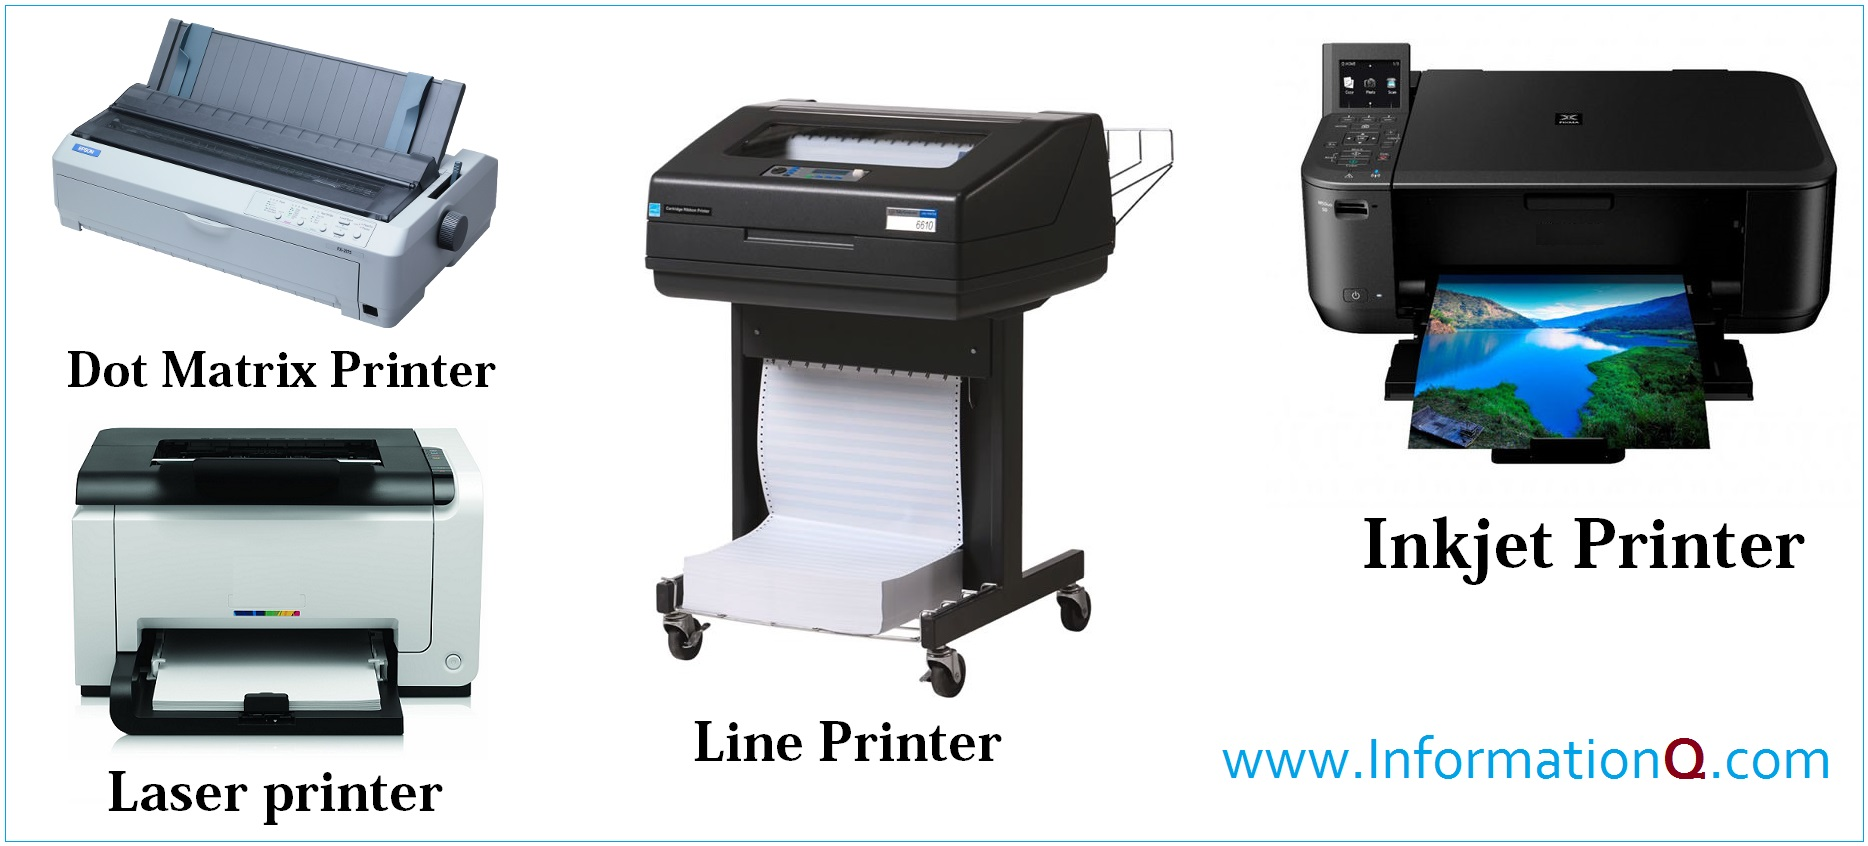 Computer Input Device Printers Are of Different Types